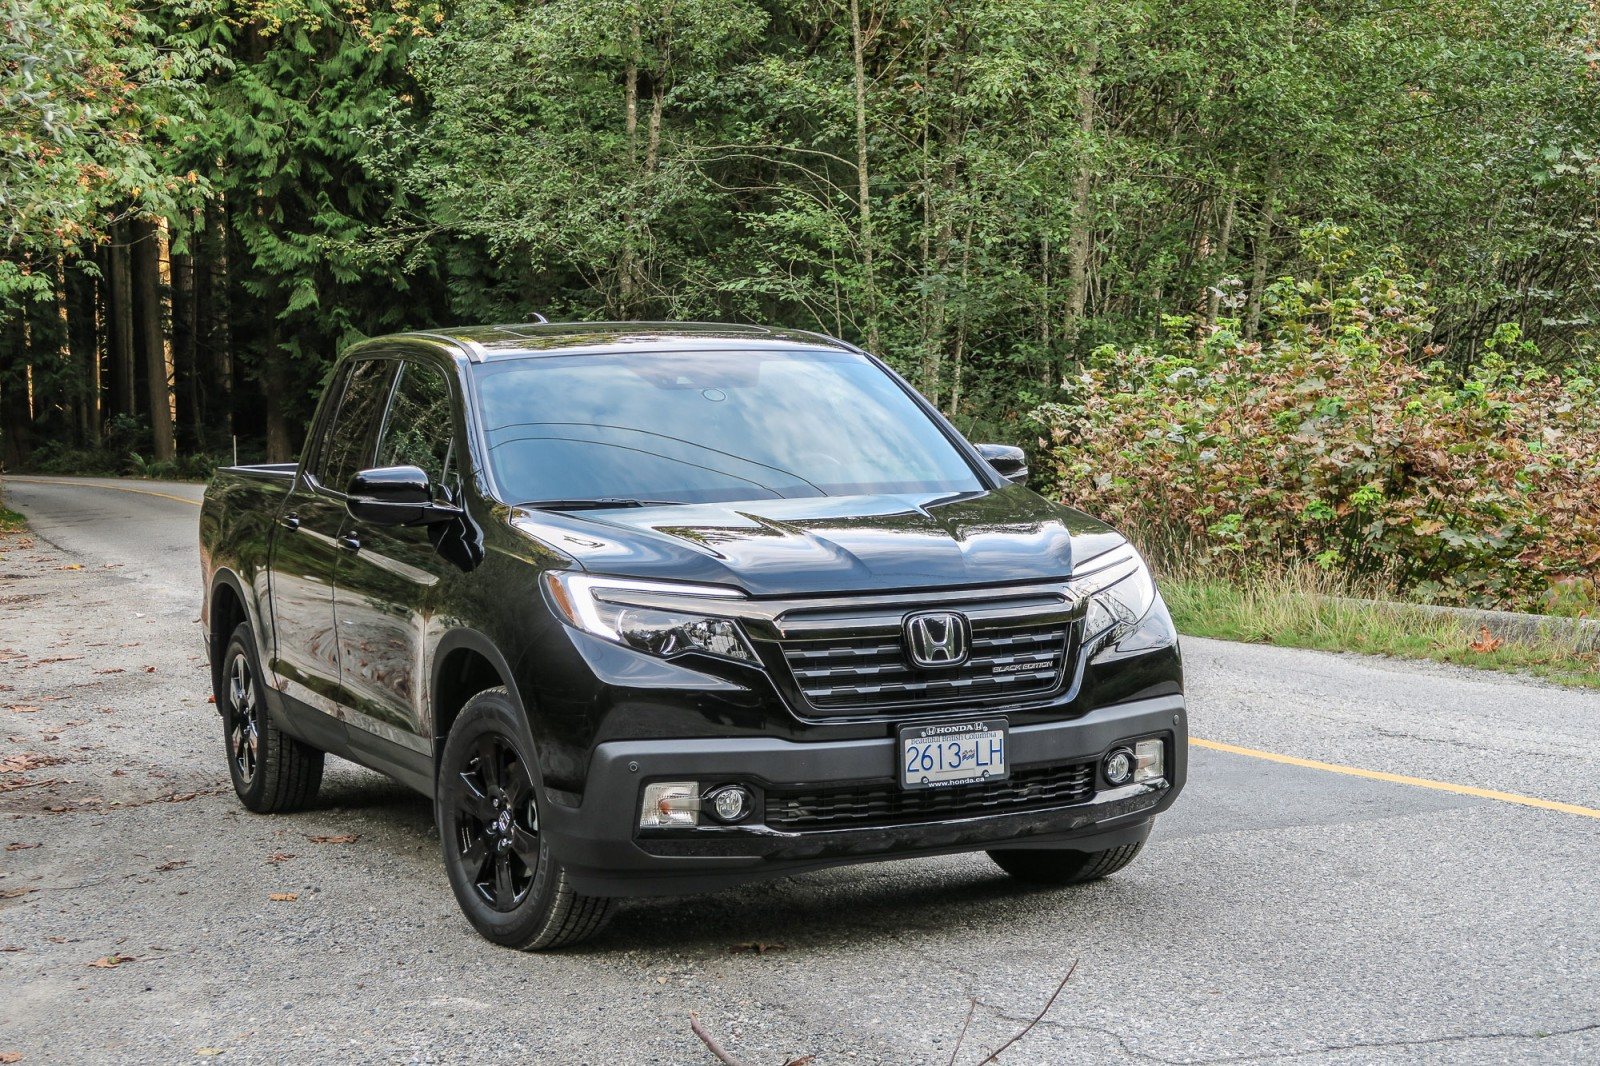 new 2017 honda ridgeline for sale openroad honda burnaby. Black Bedroom Furniture Sets. Home Design Ideas